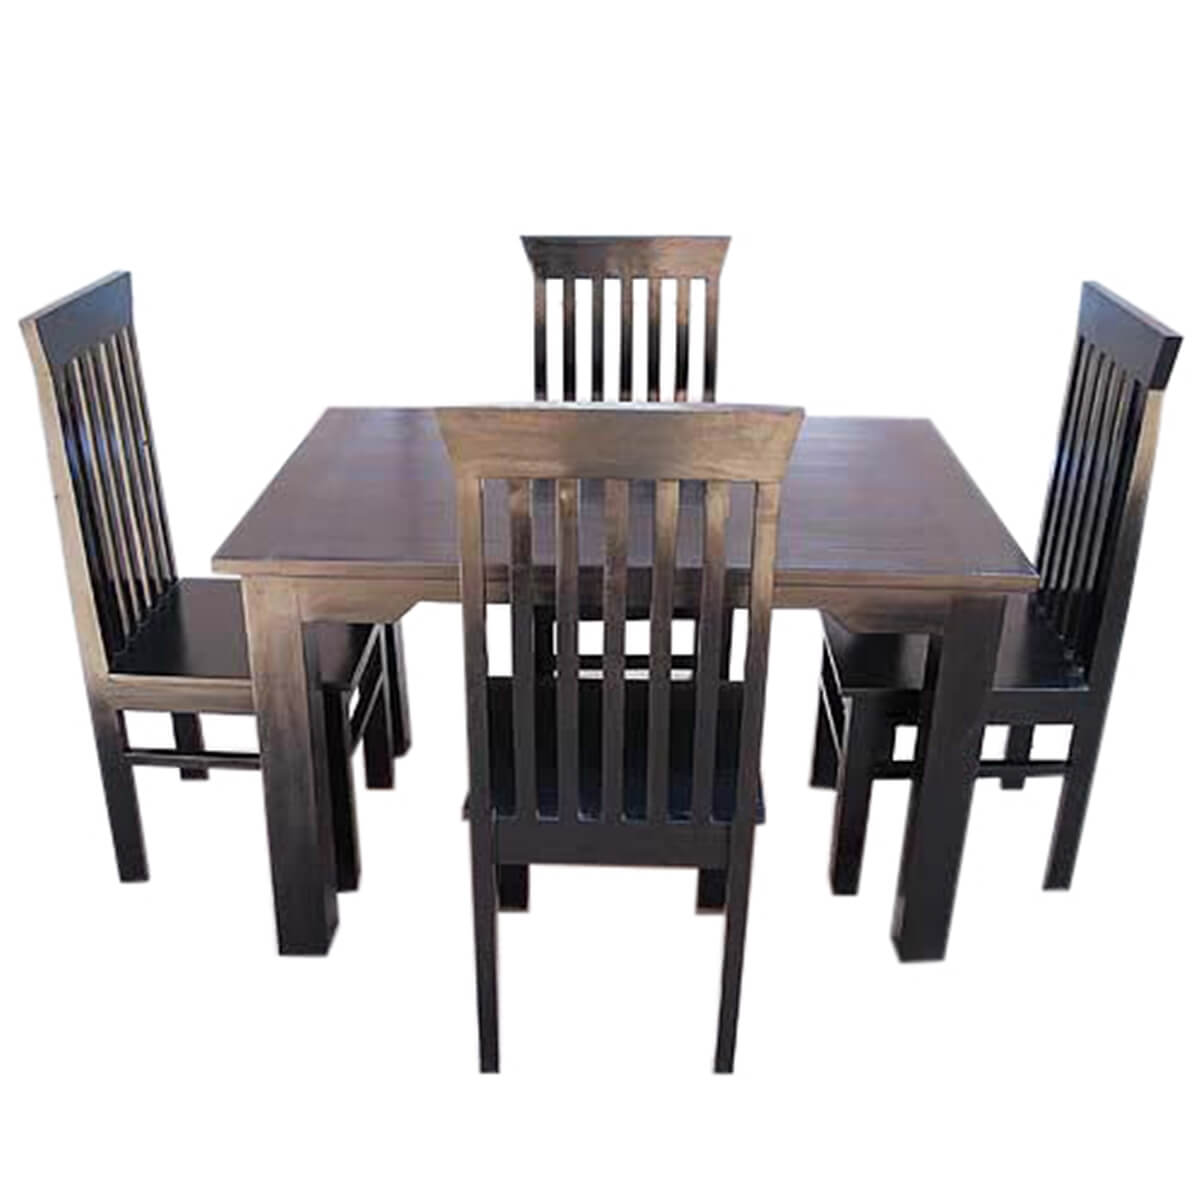 Contemporary lincoln kitchen dining room table chairs set for Kitchen and dining room chairs